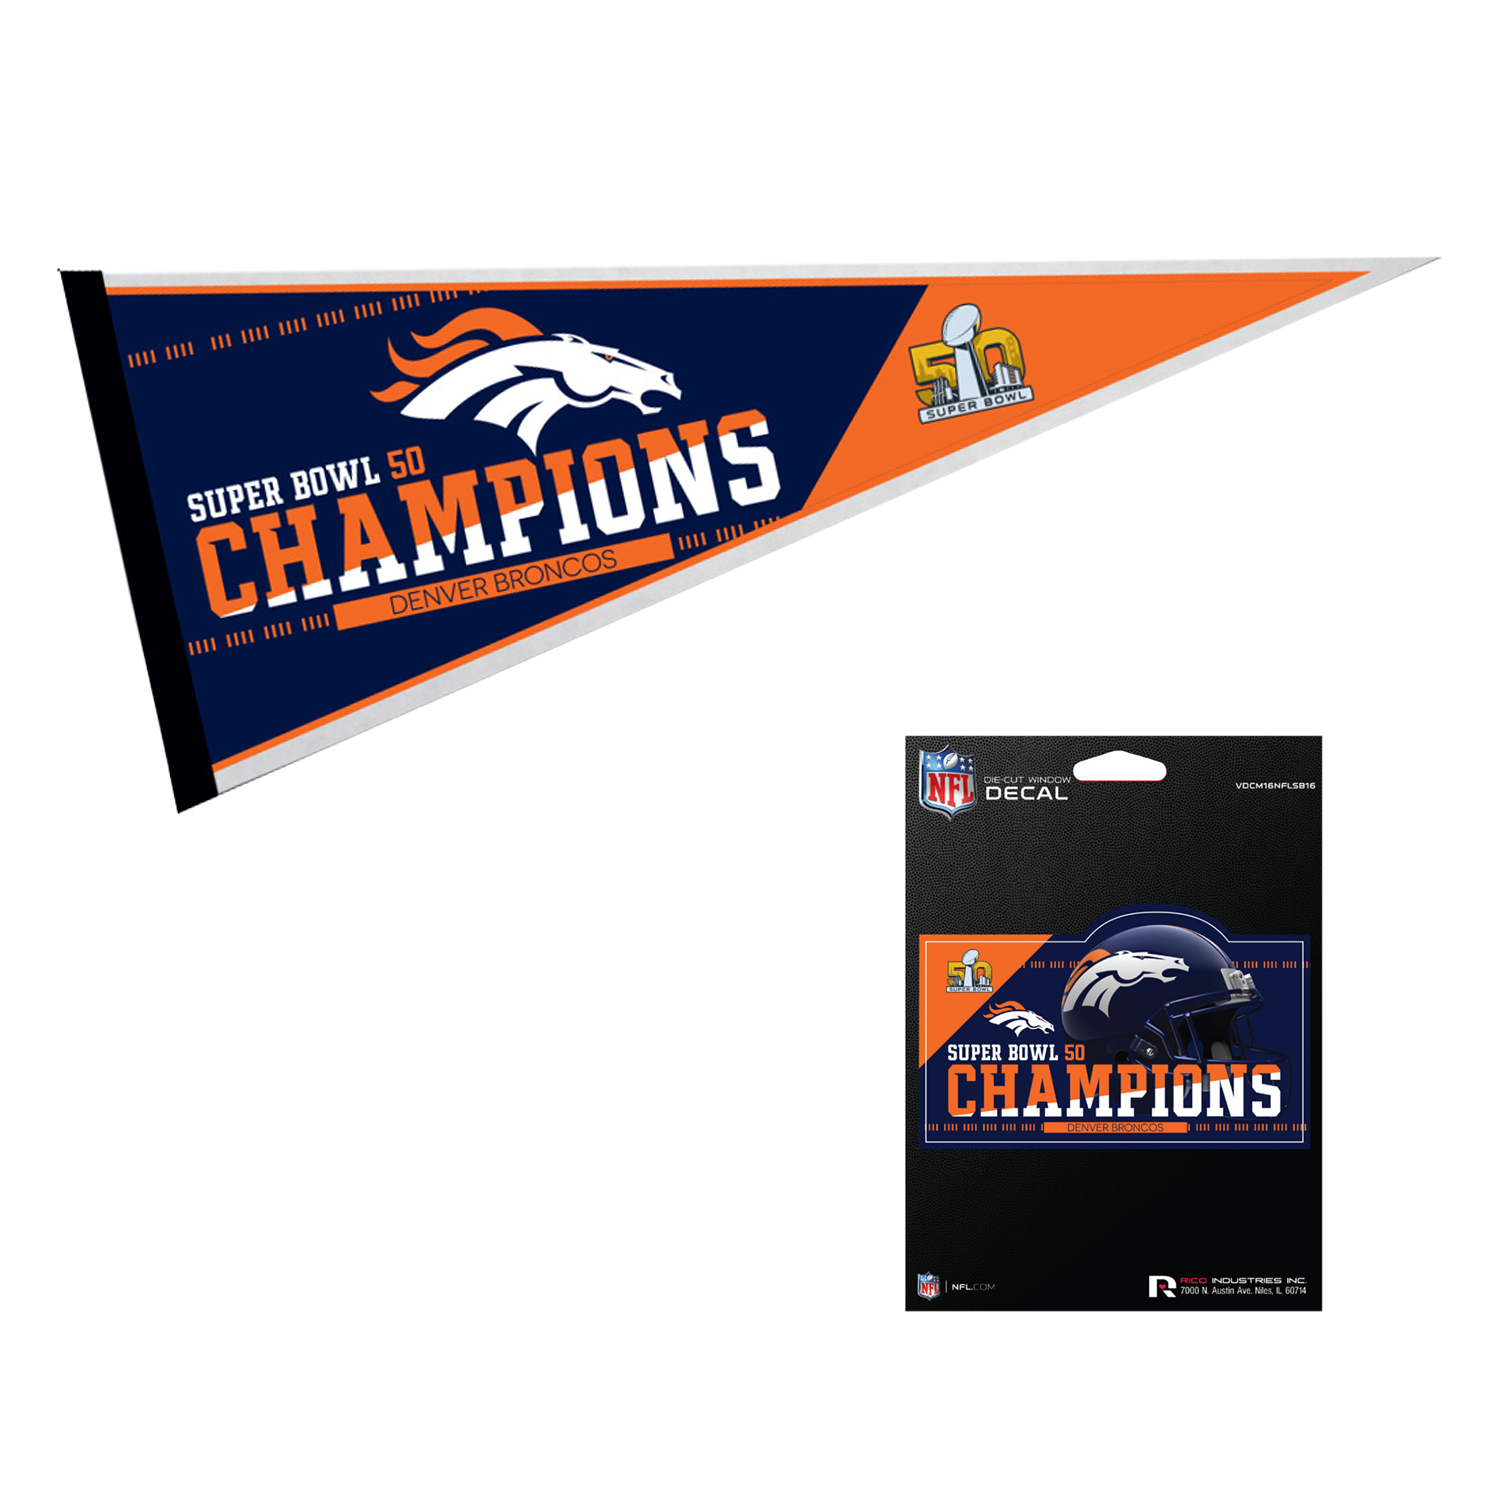 Denver Broncos NFL Super Bowl 50 Champions Pennant And Medium Die Cut Car Decal Bundle 2 Pack